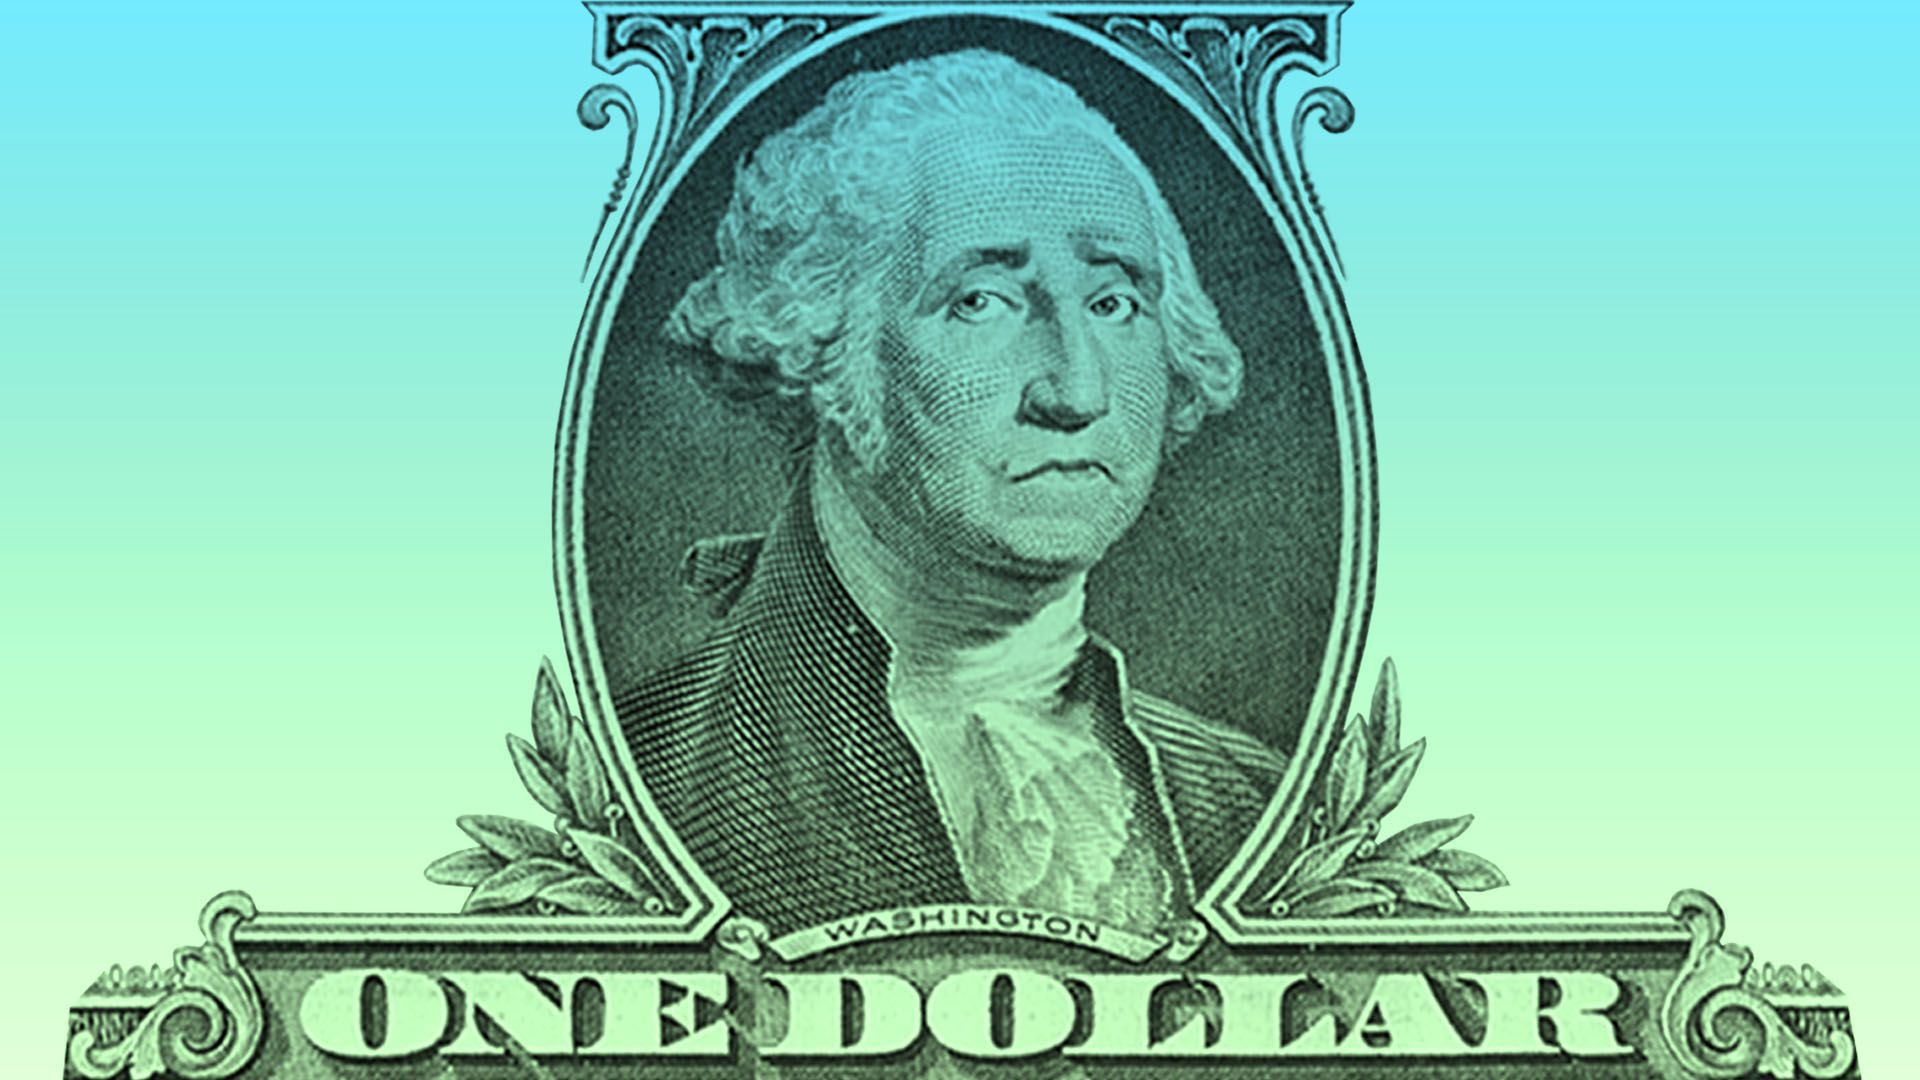 Illustration of George Washington on the $1 bill frowning